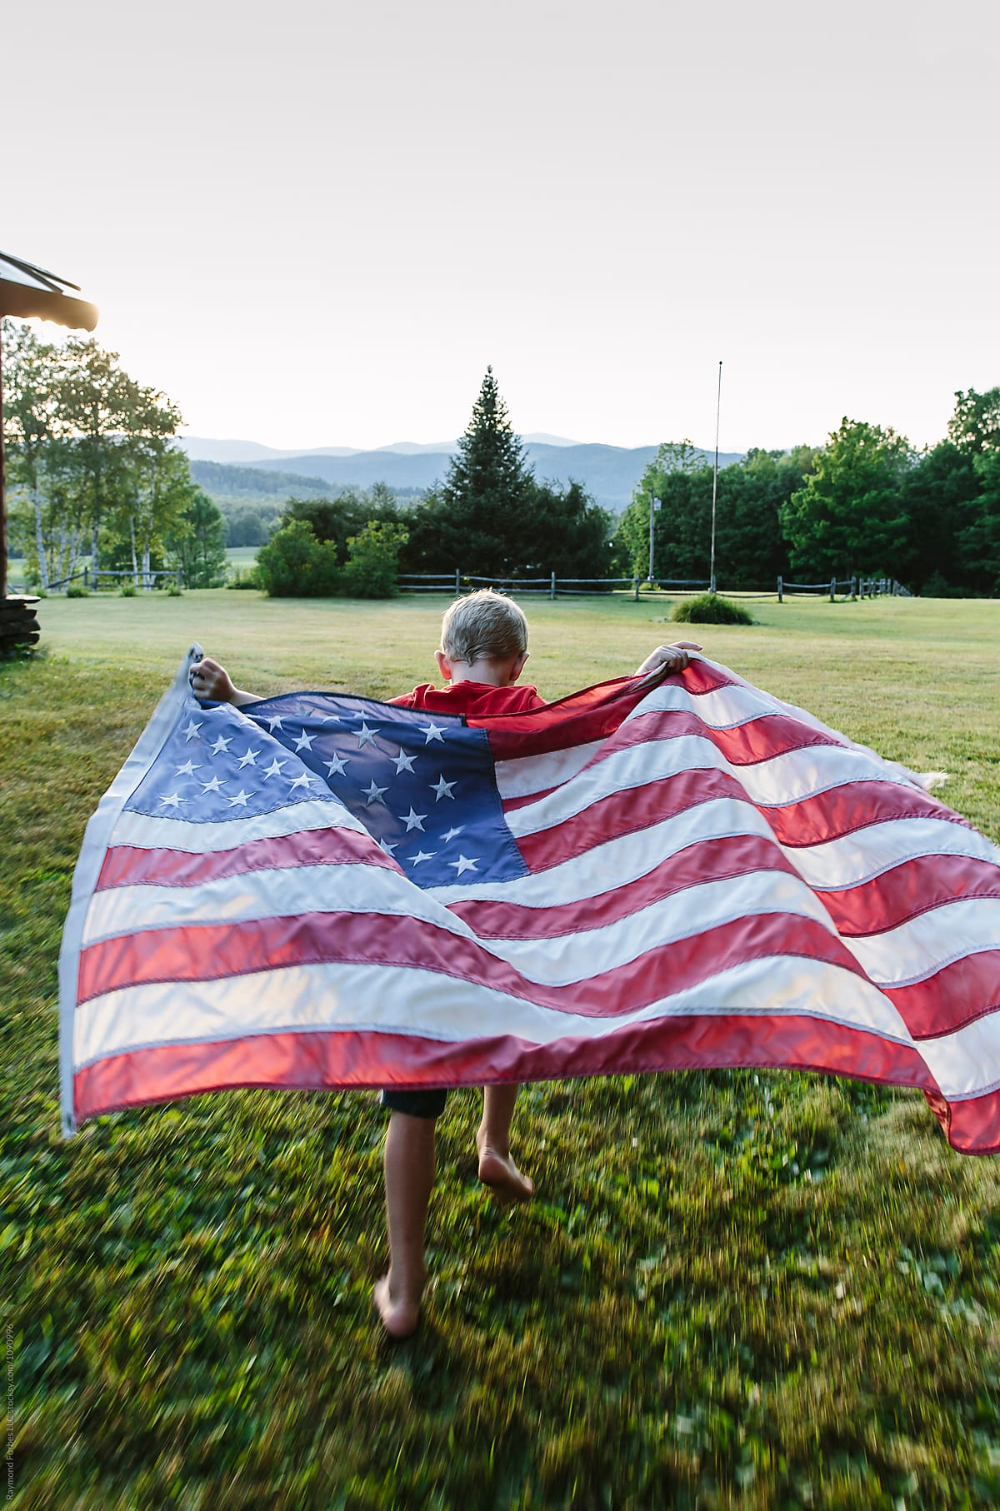 Child Running With American Flag In Beautiful Rural Landscapefamily Lifestyle Photography O In 2020 American Flag Photos Beautiful Landscape Photography American Flag